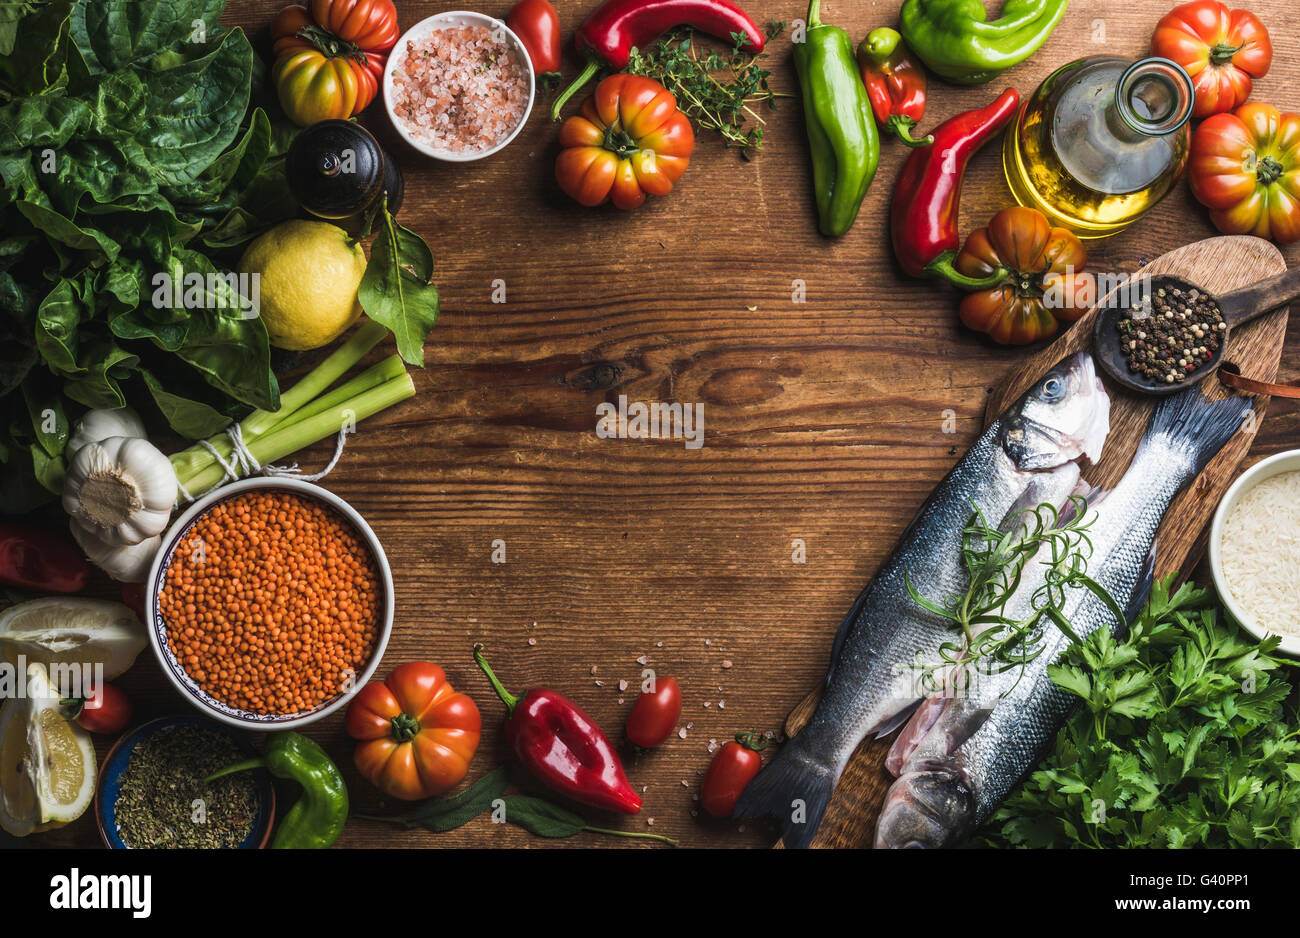 Ingredients for cooking healthy dinner. Raw uncooked seabass fish with vegetables, grains, herbs and spices over - Stock Image